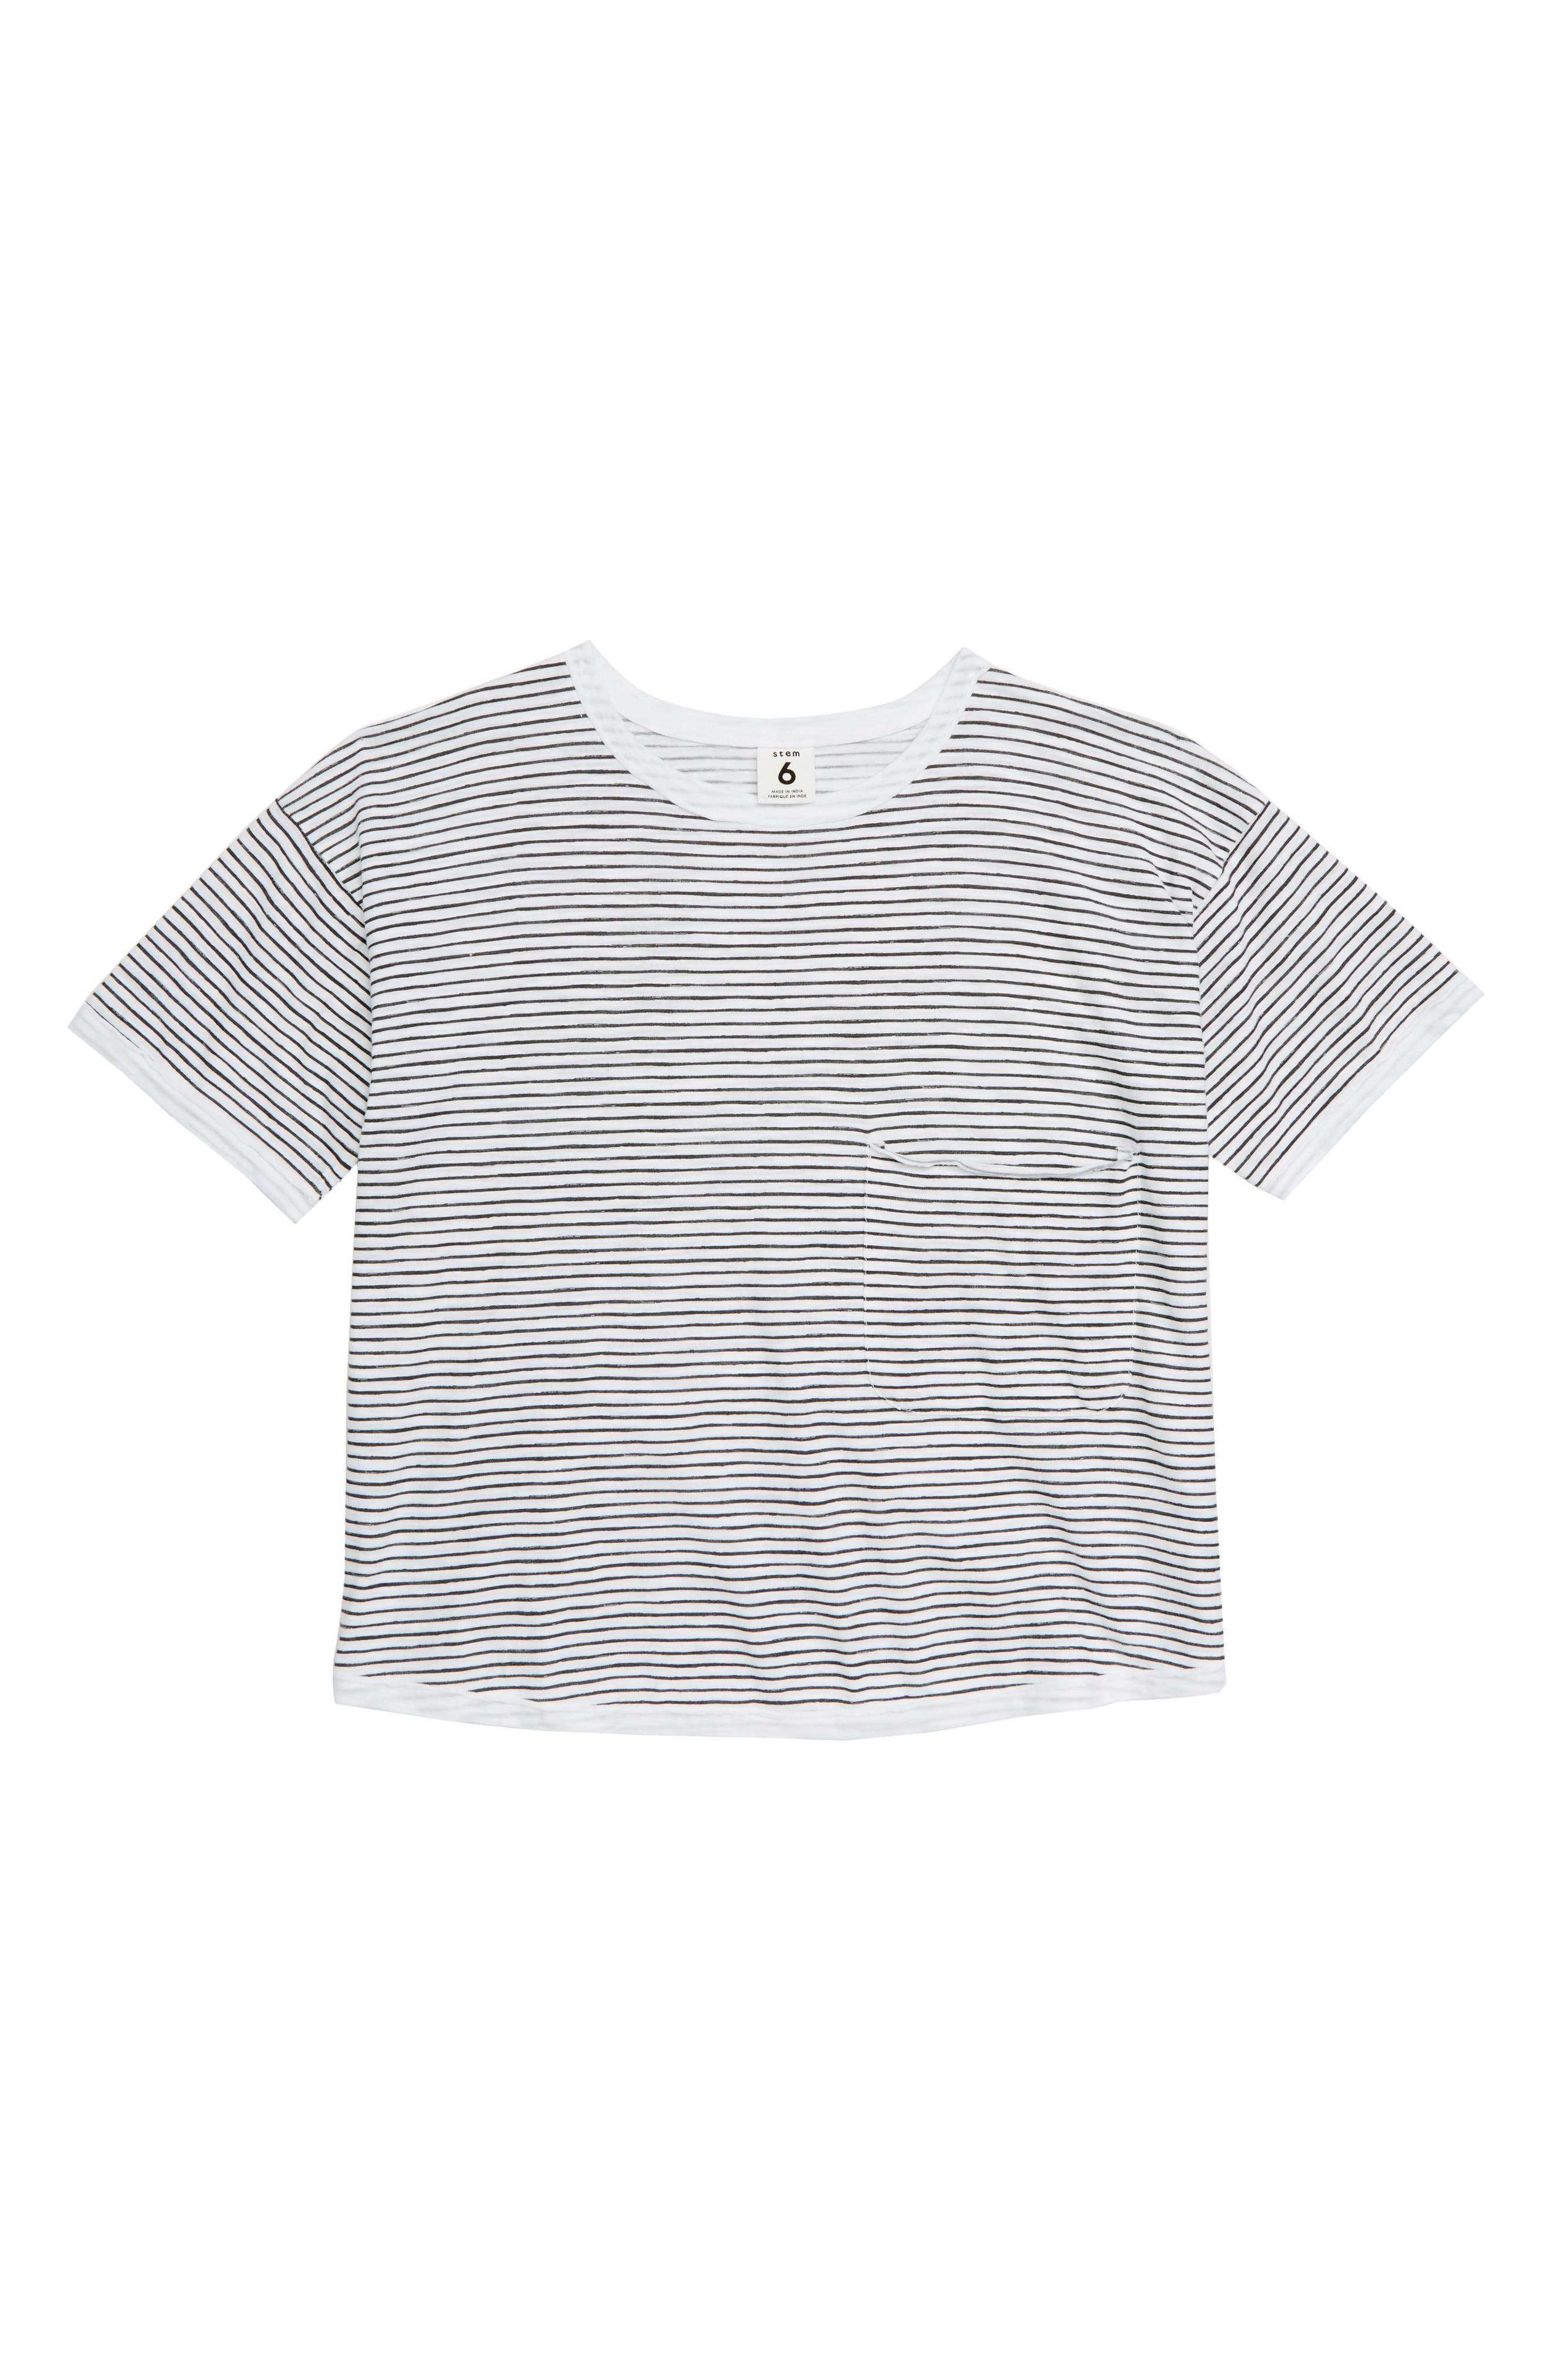 Painted Stripe T-Shirt,                         Main,                         color, WHITE- GREY PAINTED STRIPE